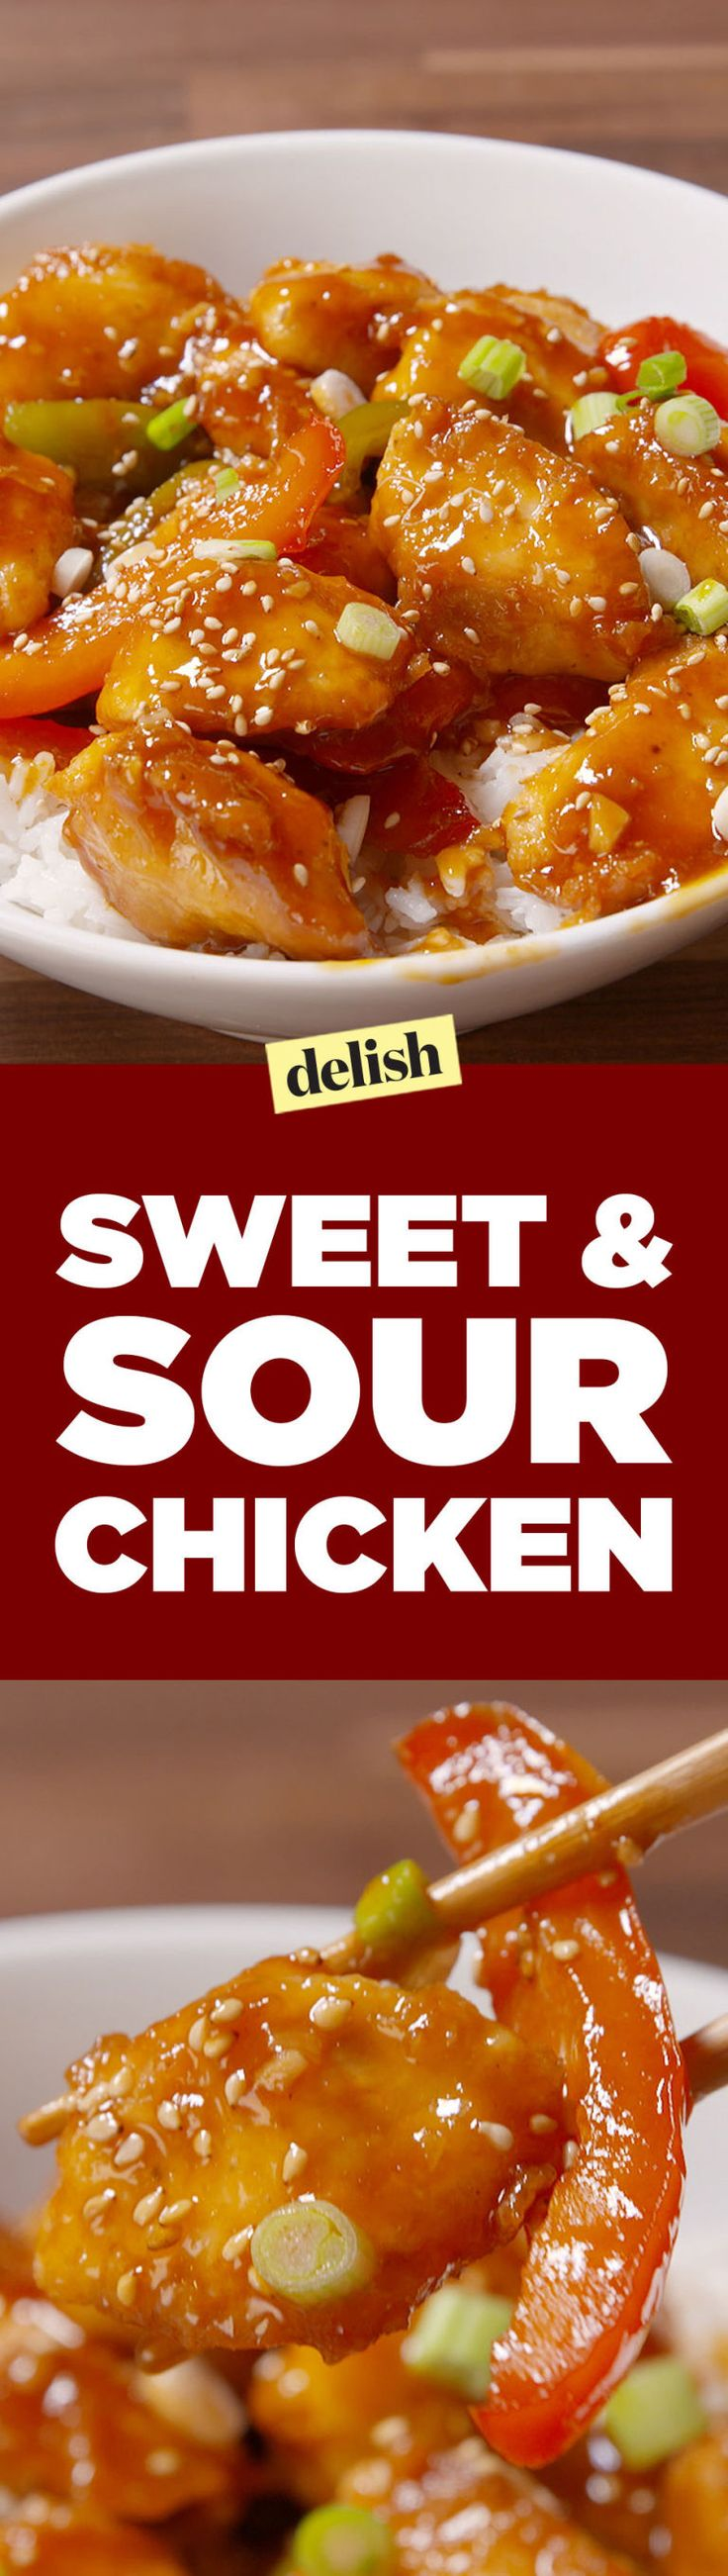 Sweet and Sour Chicken  - Delish.com